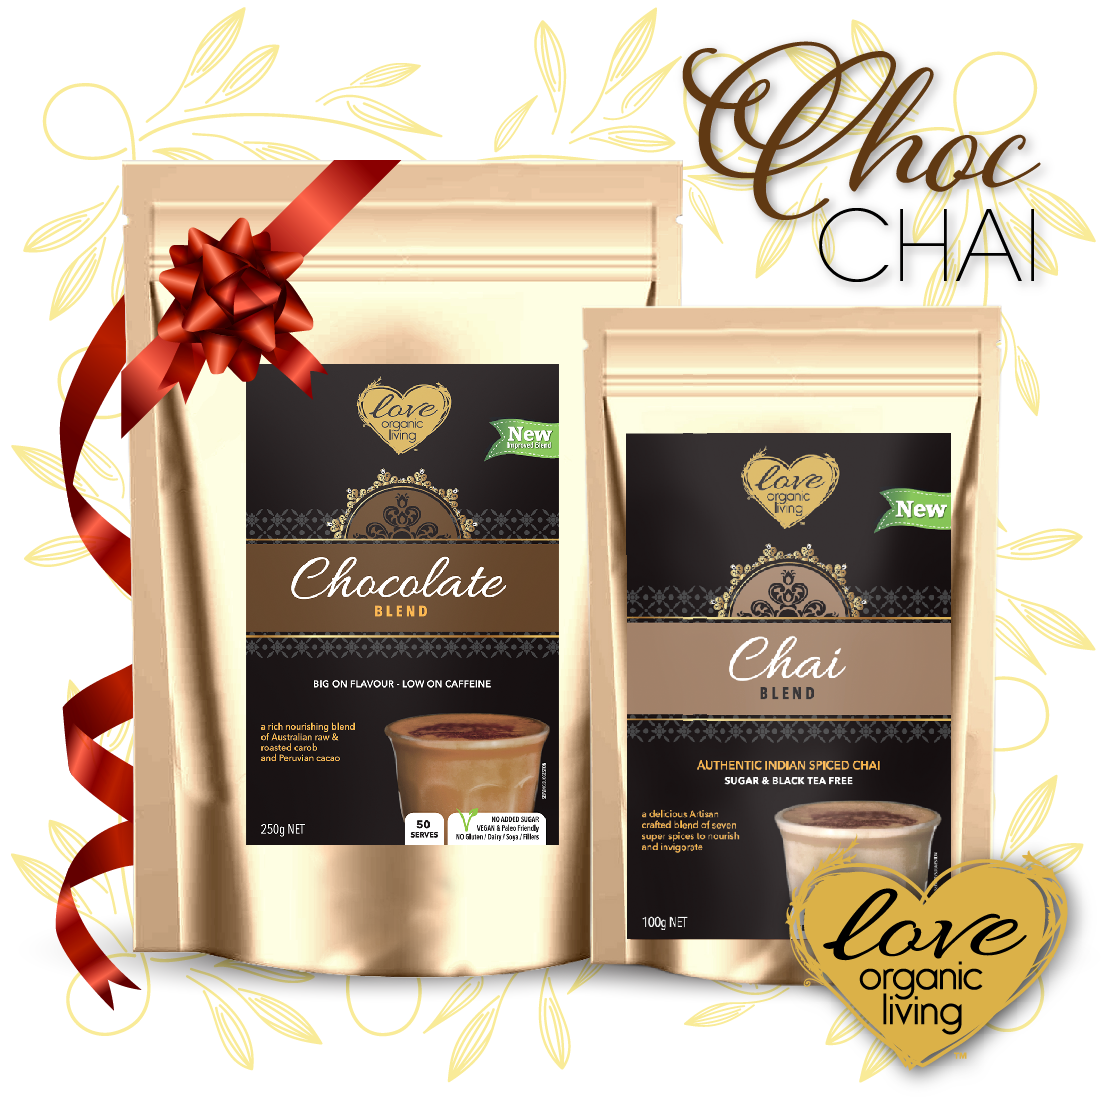 CHOC-CHAI SPECIAL OFFER